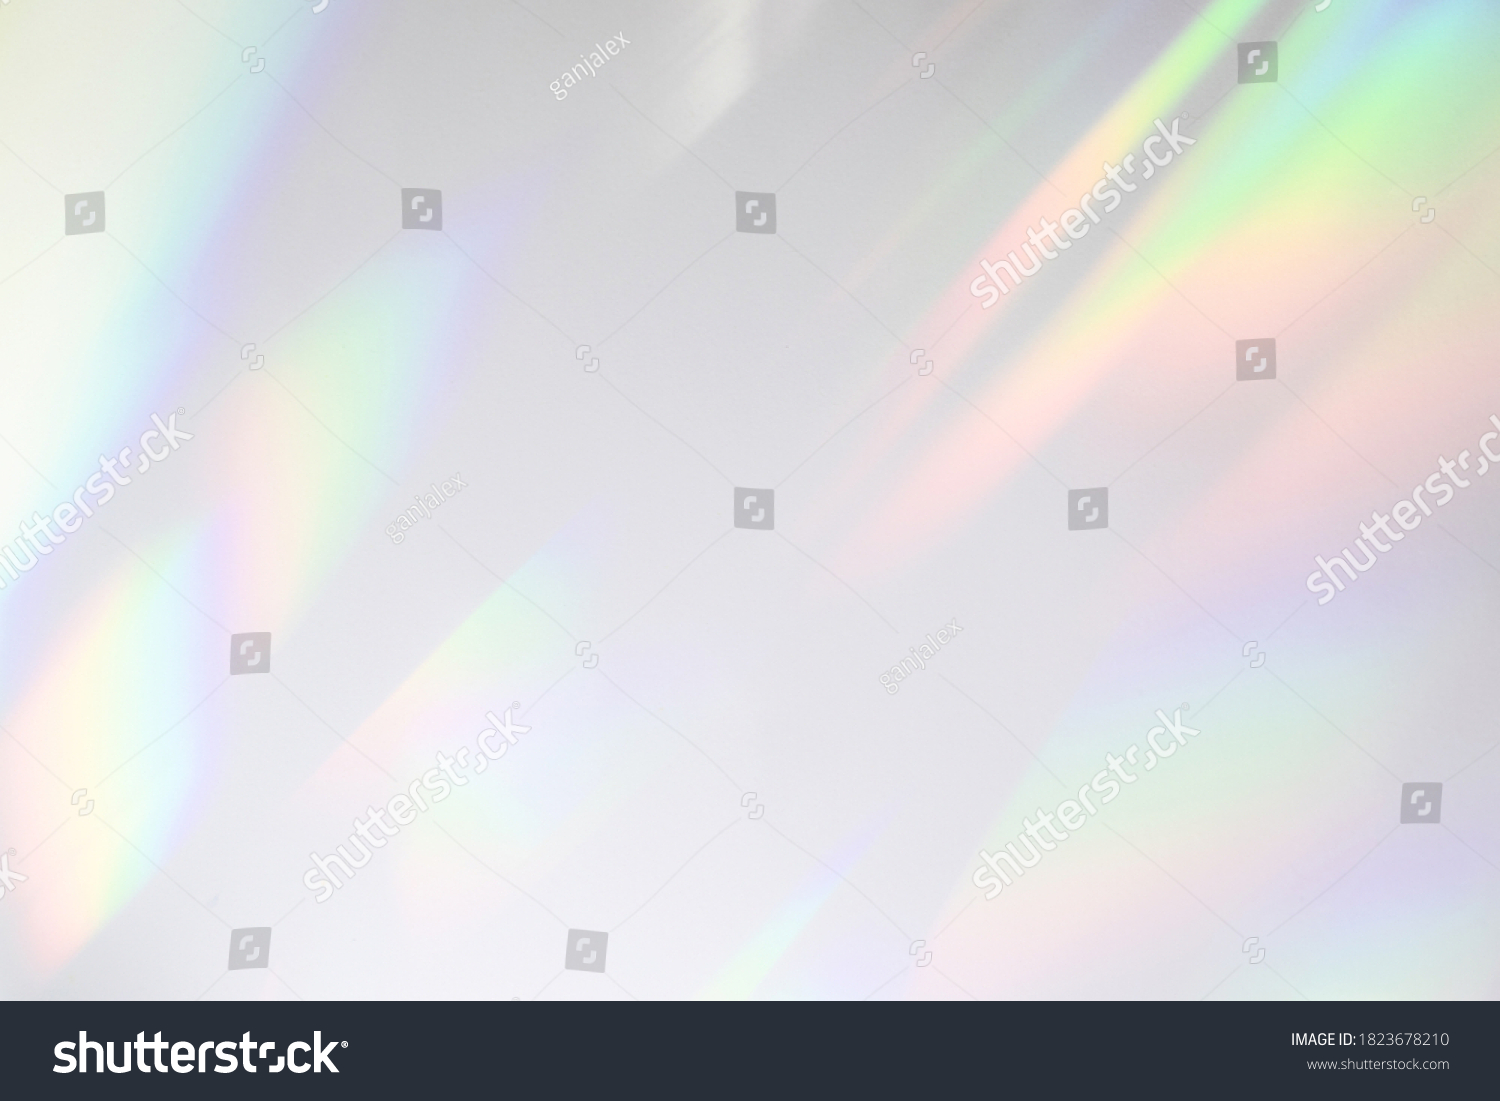 Blurred rainbow light refraction texture overlay effect for photo and mockups. Organic drop diagonal holographic flare on a white wall. Shadows for natural light effects #1823678210